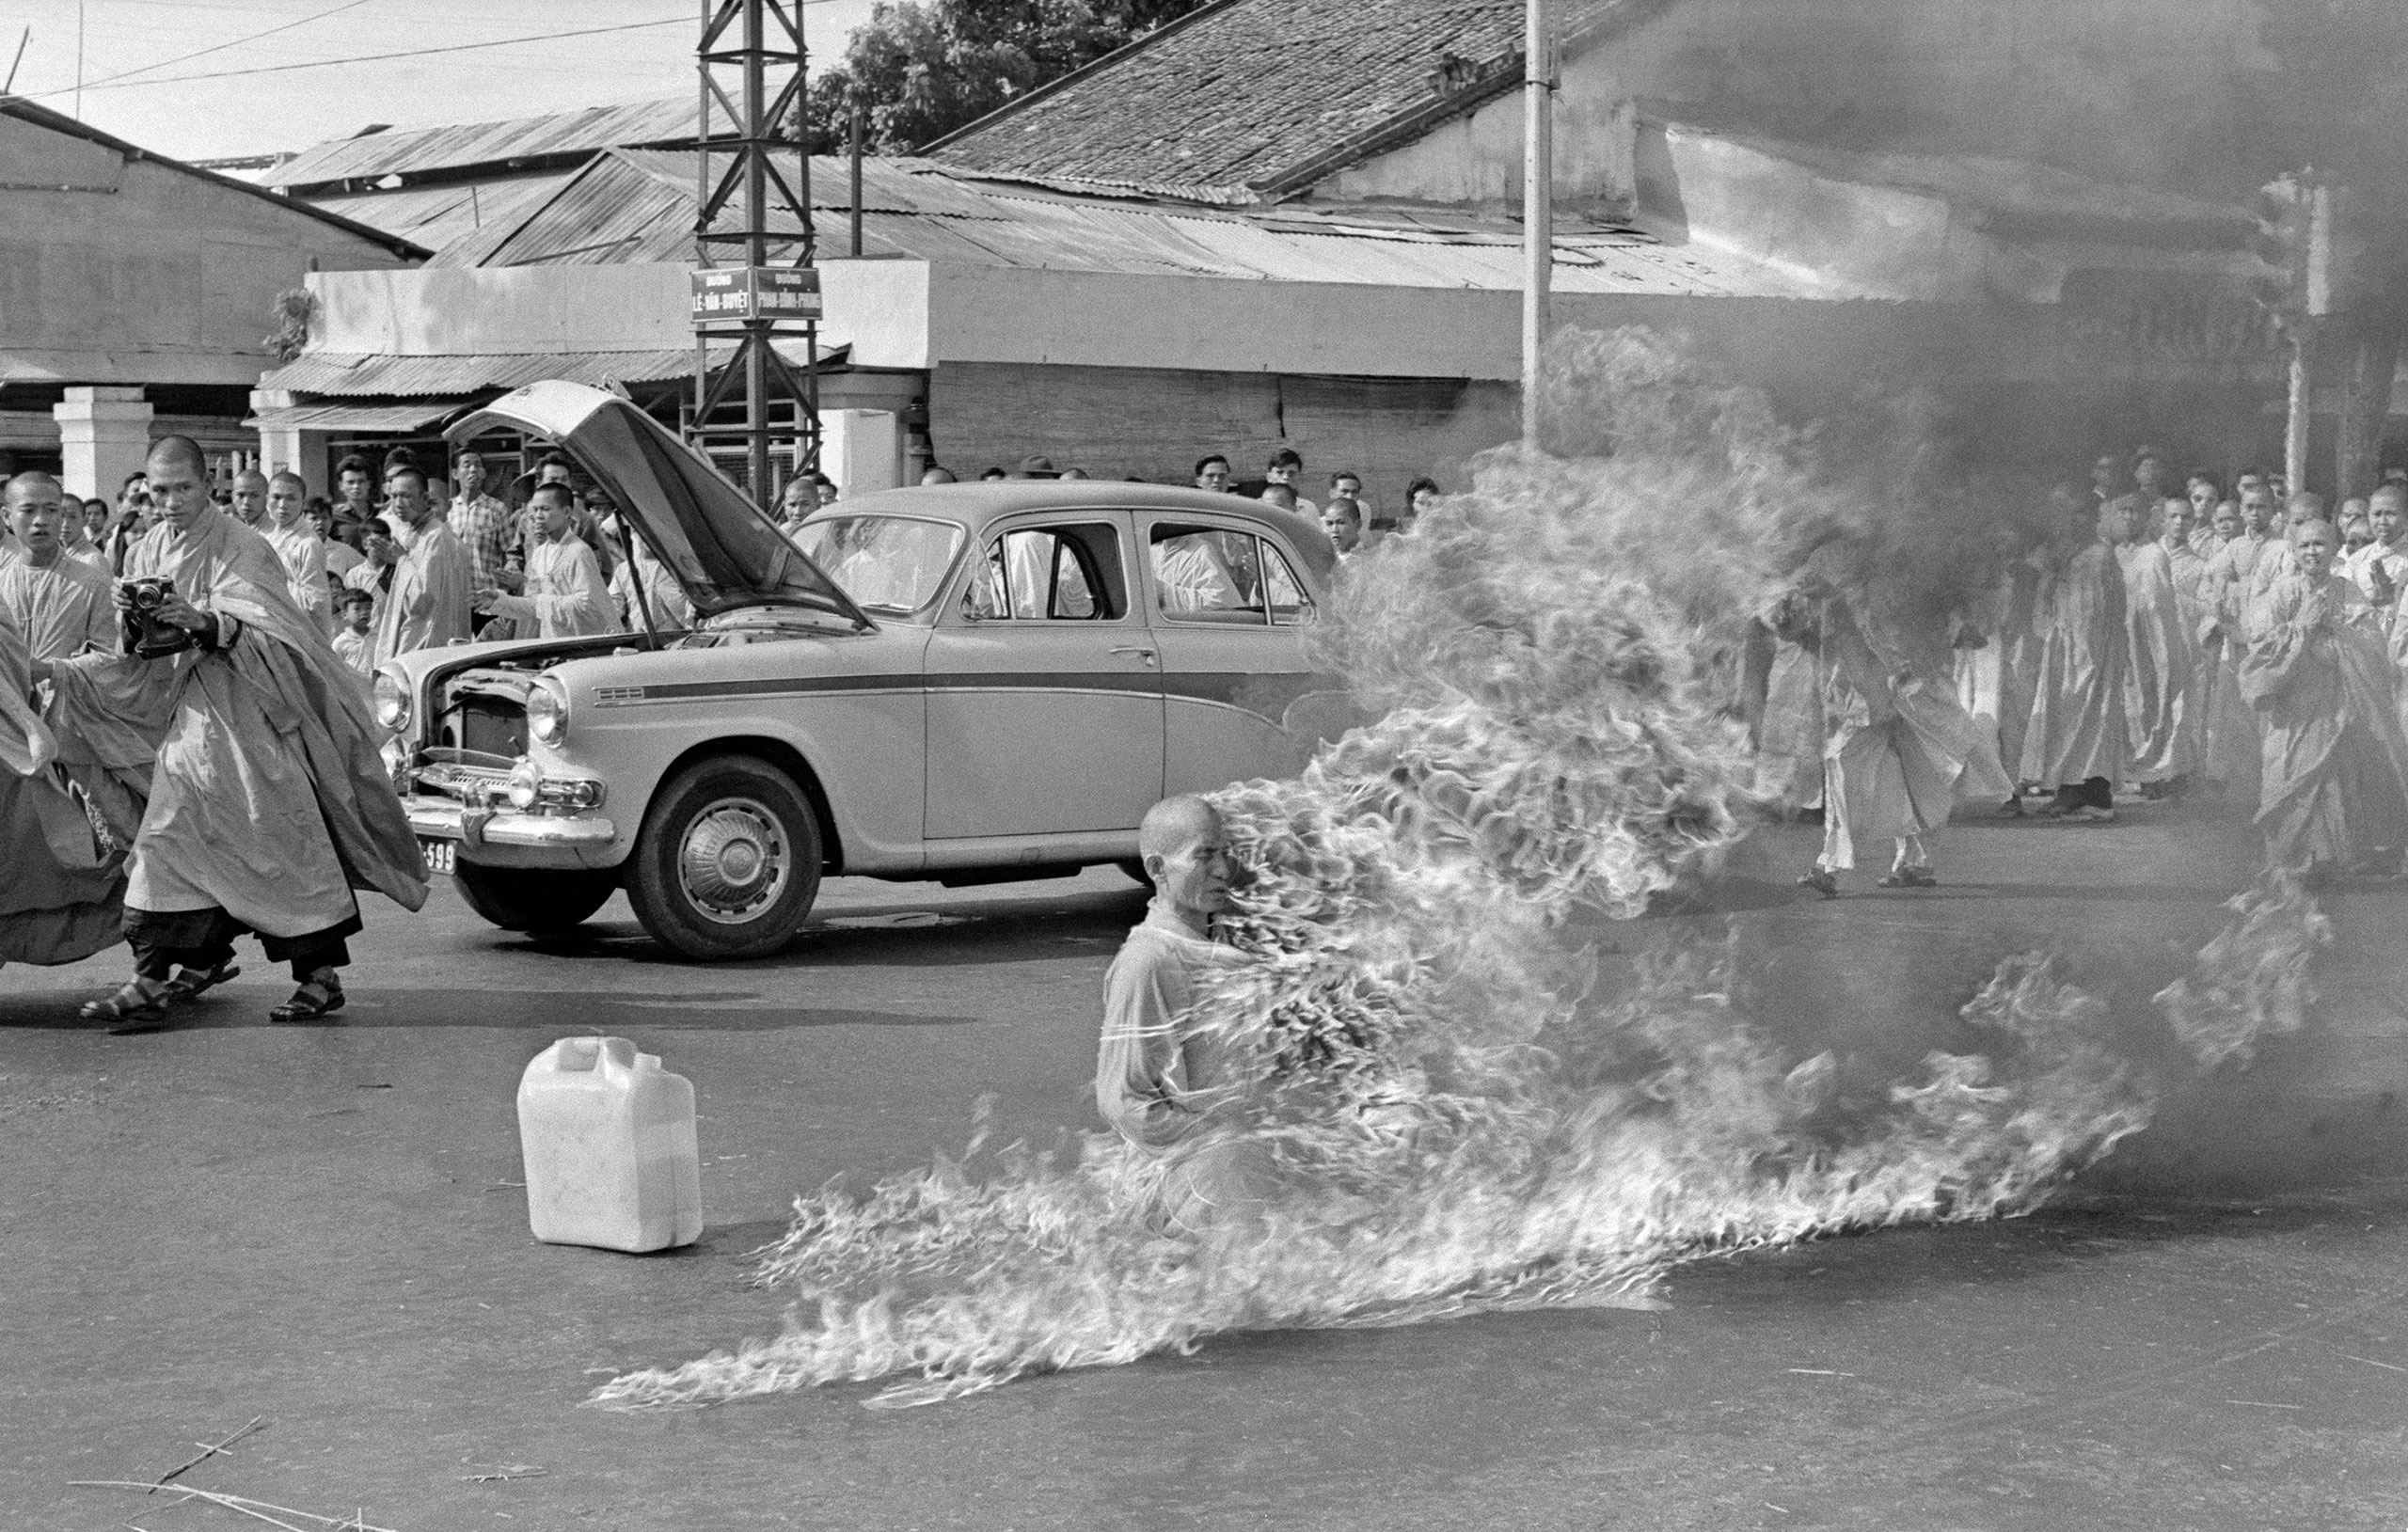 The Burning Monk by Malcolm Browne, 1963.